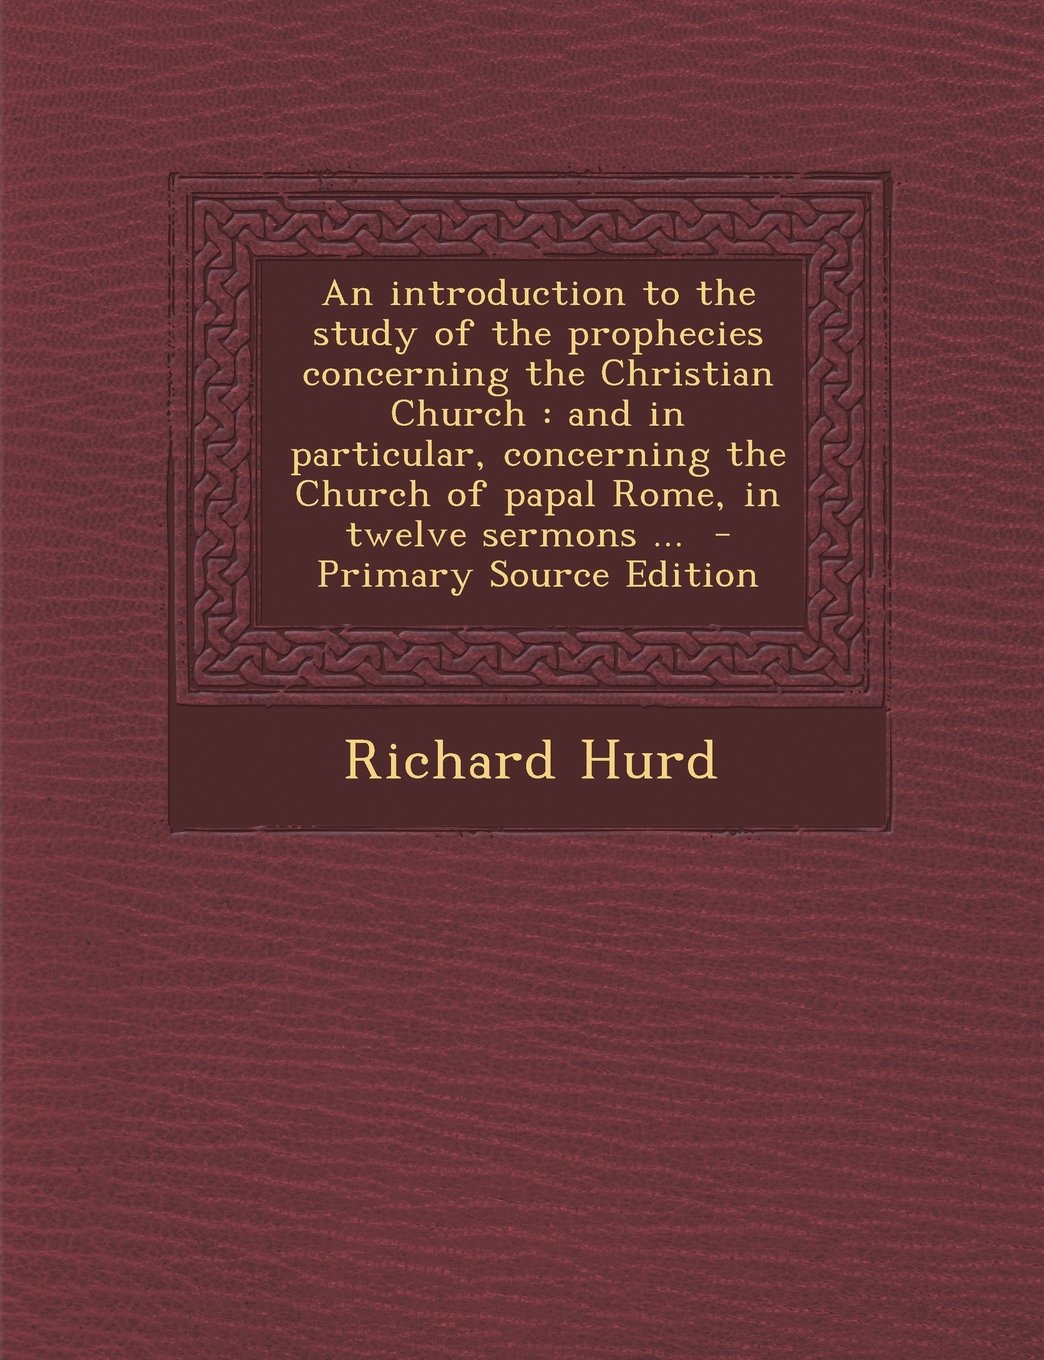 An  Introduction to the Study of the Prophecies Concerning the Christian Church: And in Particular, Concerning the Church of Papal Rome, in Twelve Ser pdf epub